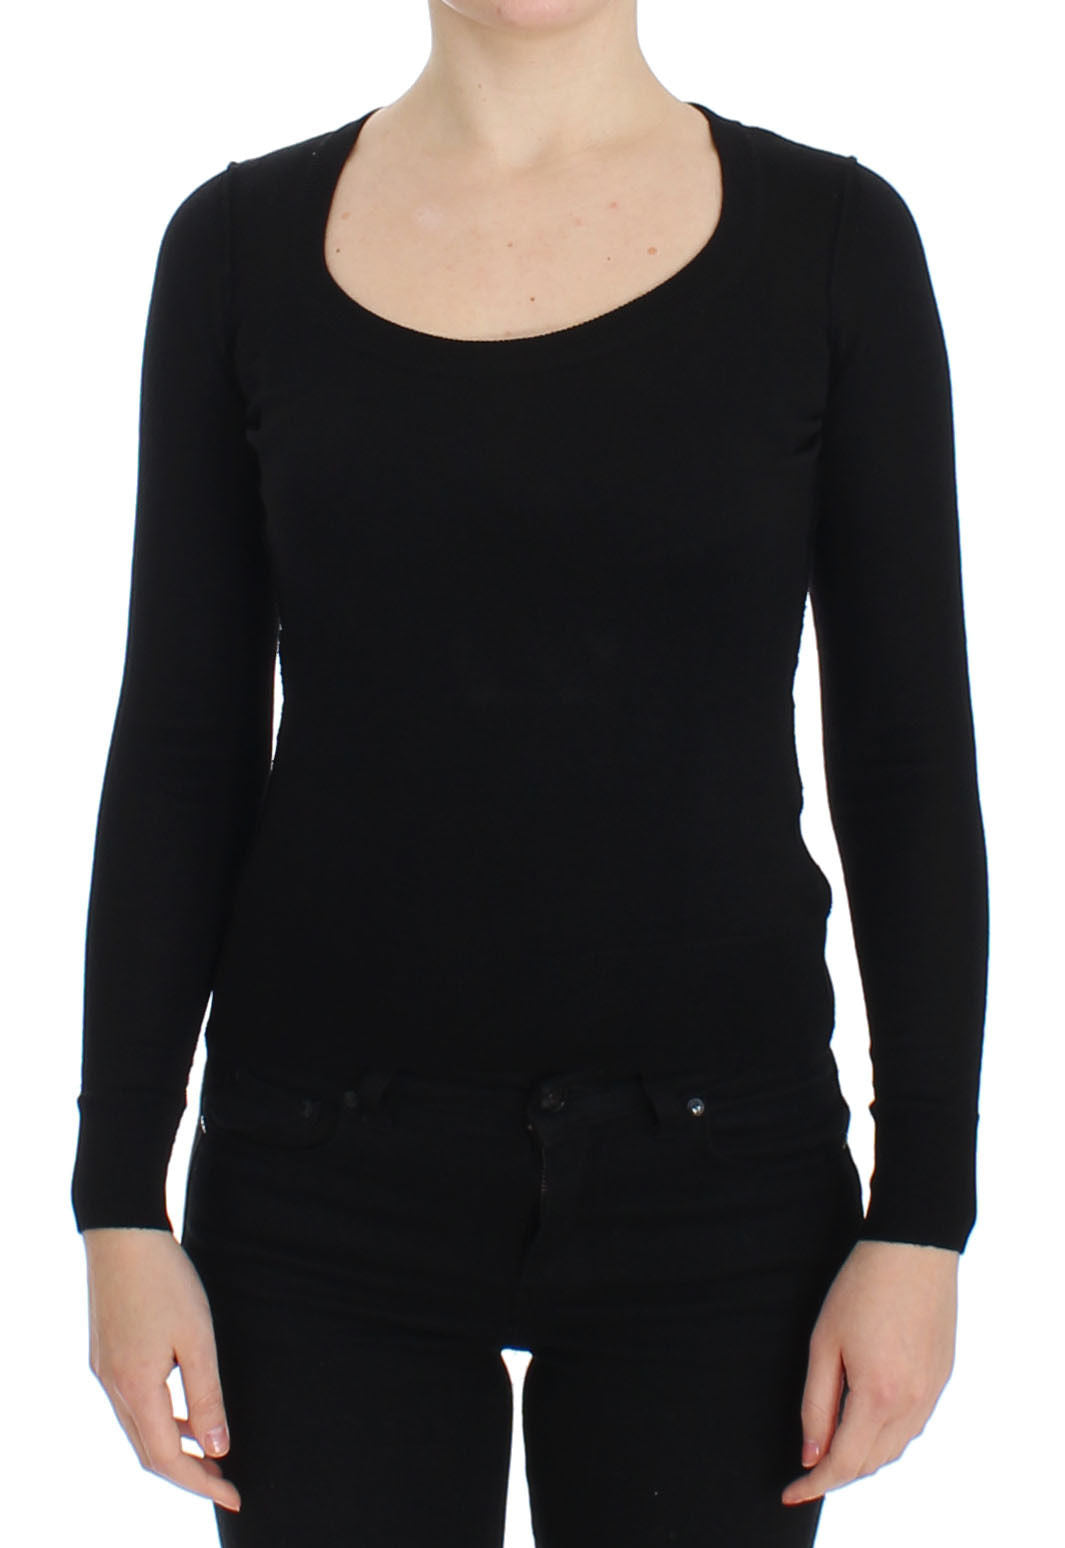 Image of Dolce & Gabbana Black Wool Crewneck Sweater Pullover Top